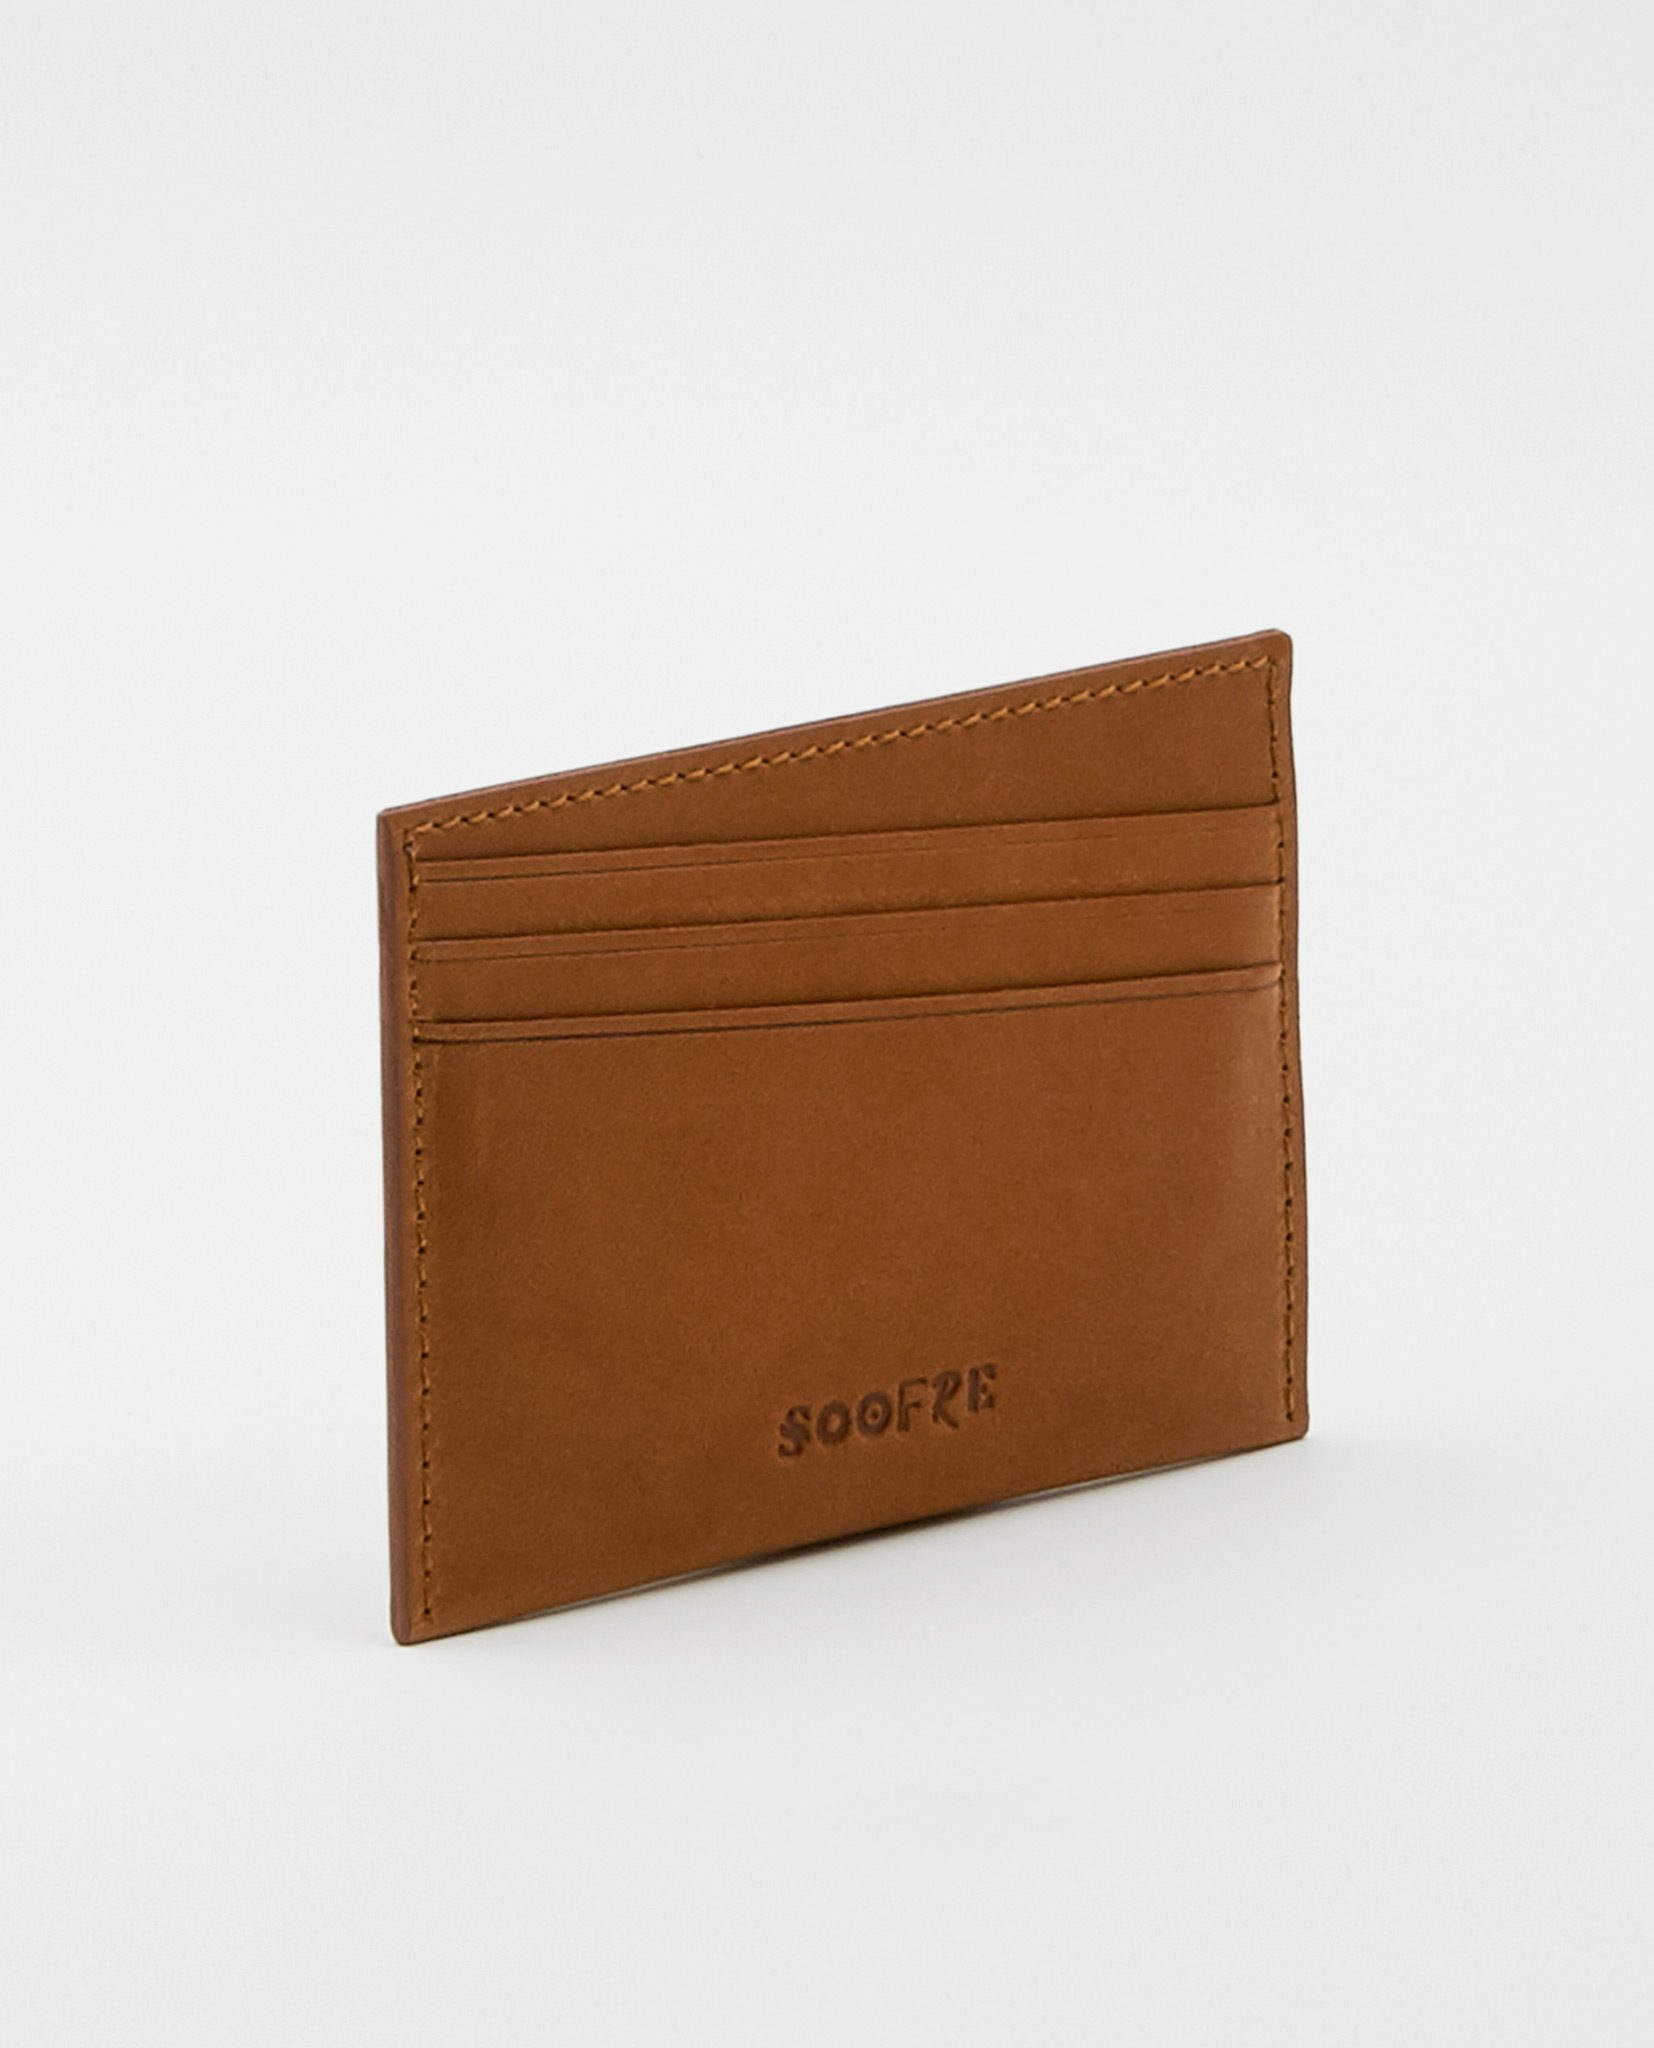 Soofre Vegetable Tanned Leather Card Holder Tan